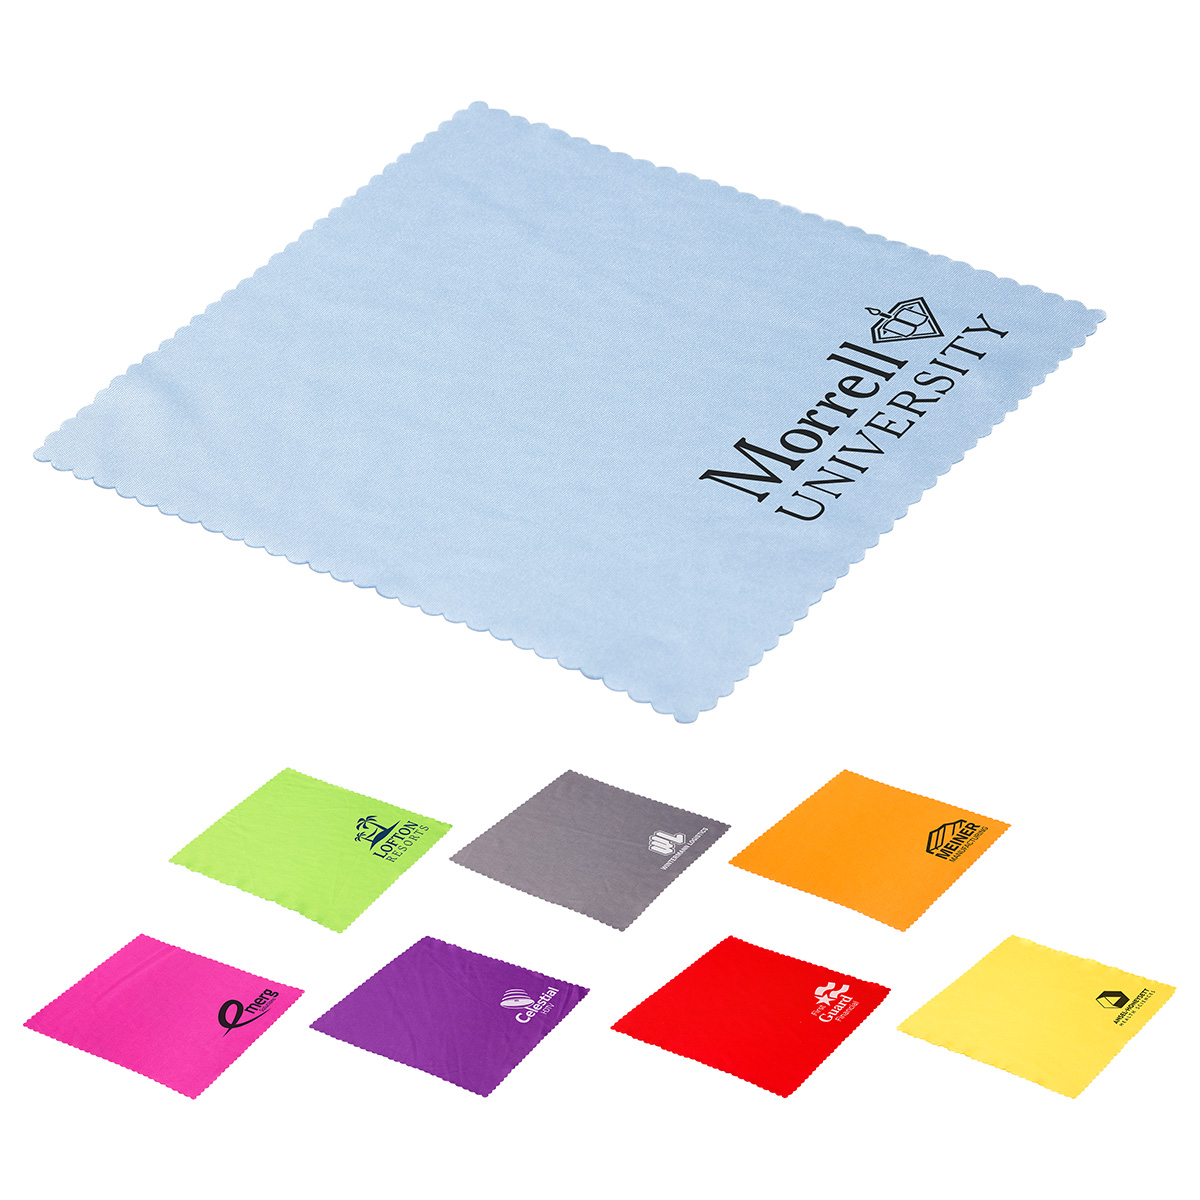 Value Plus Microfiber Cloth, WPC-VM17, 1 Colour Imprint